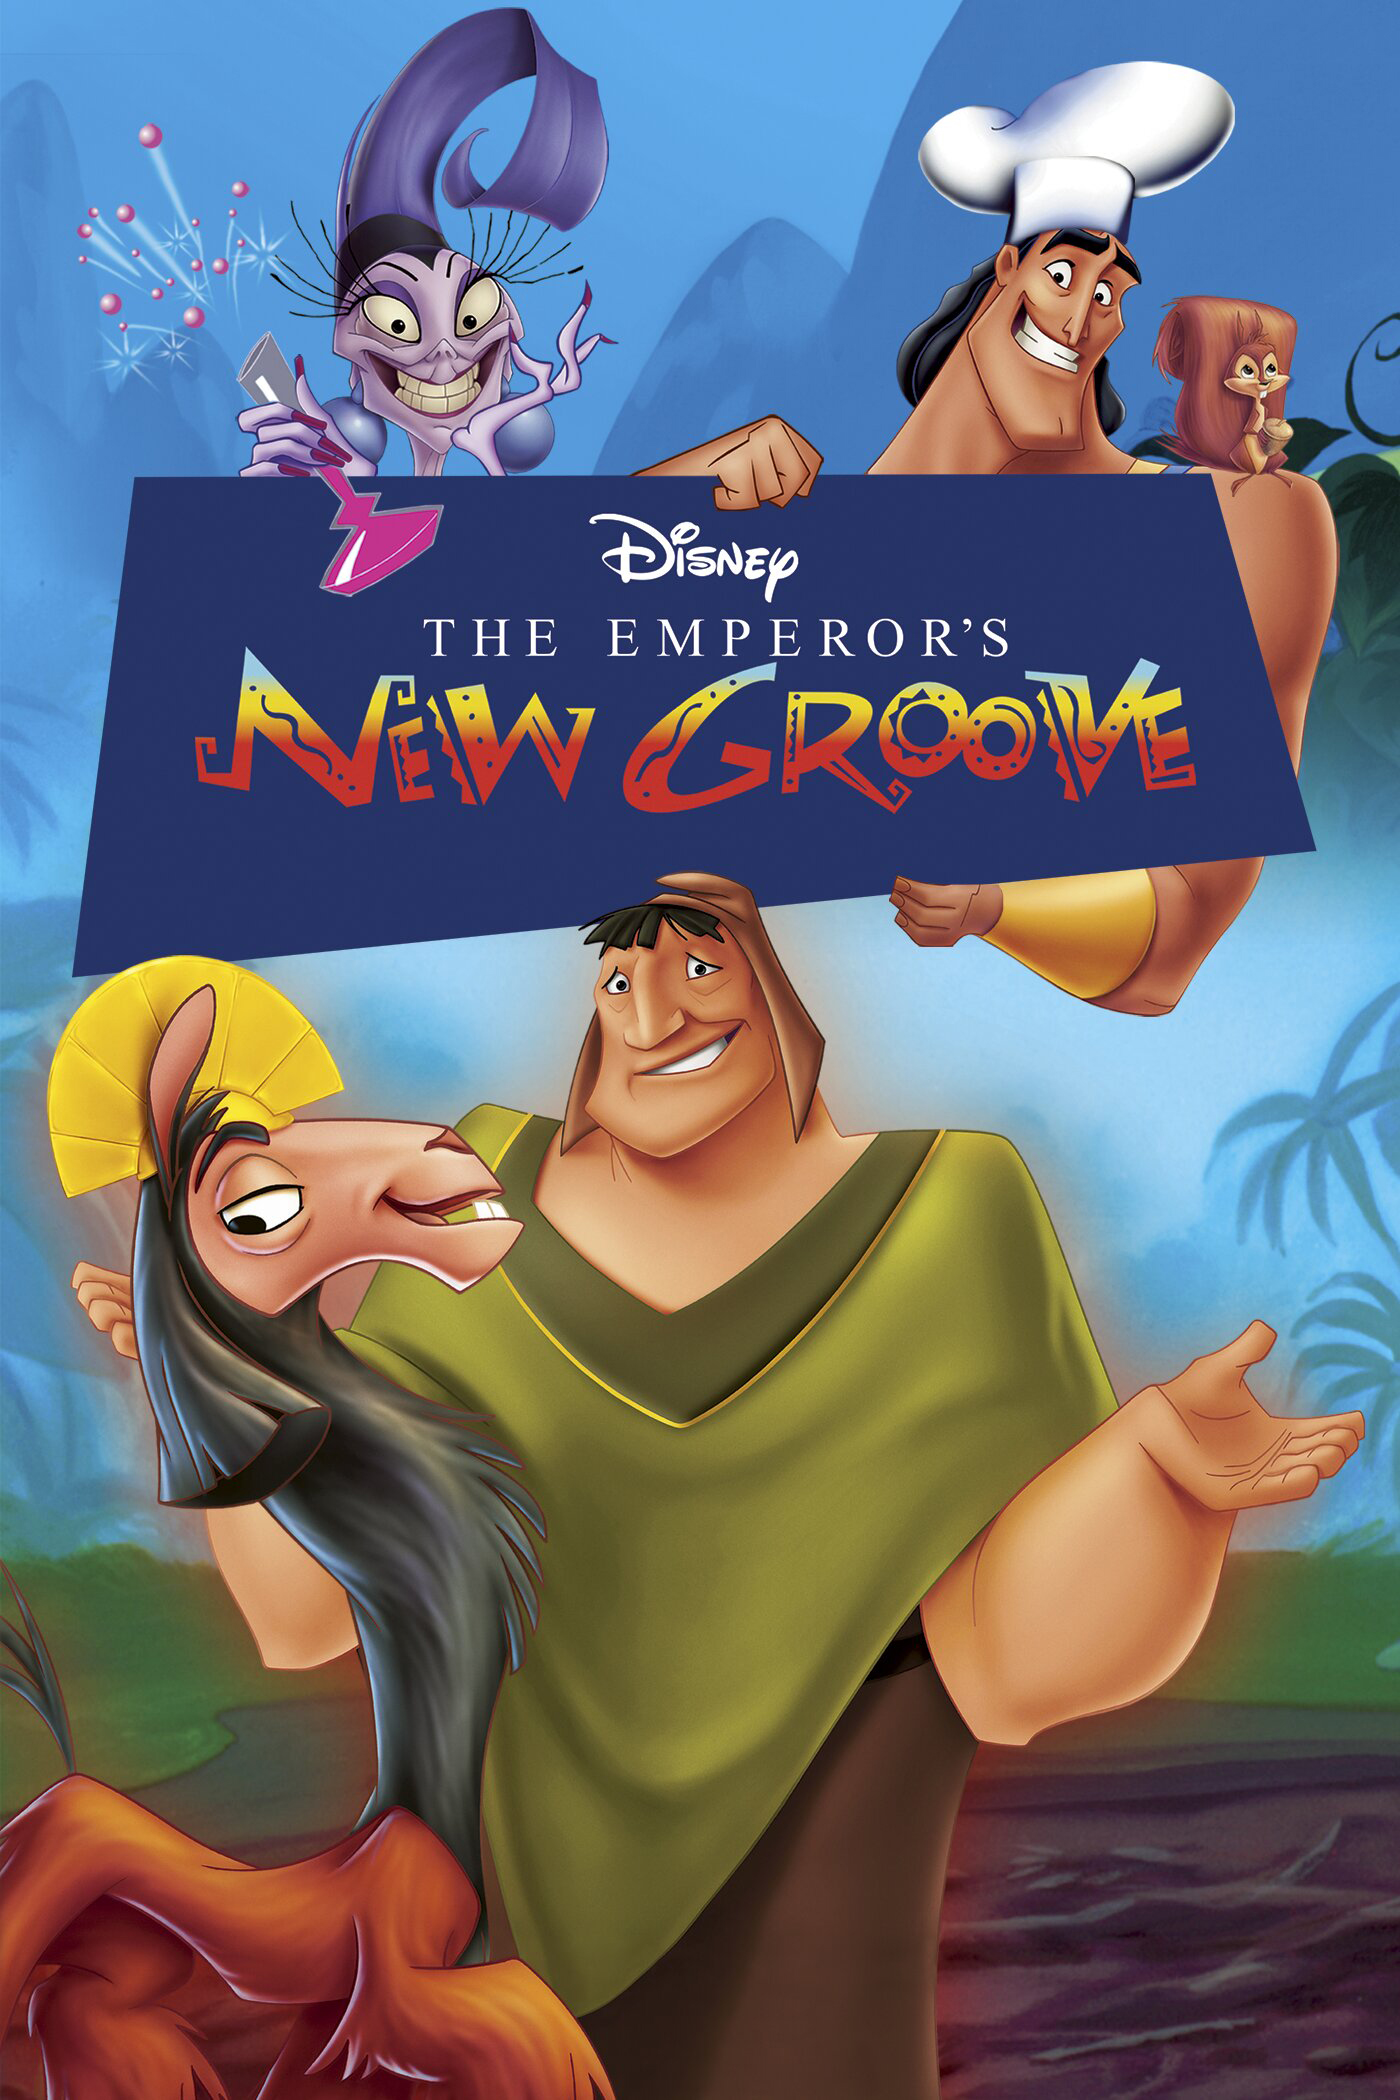 Still of The Emperor's New Groove